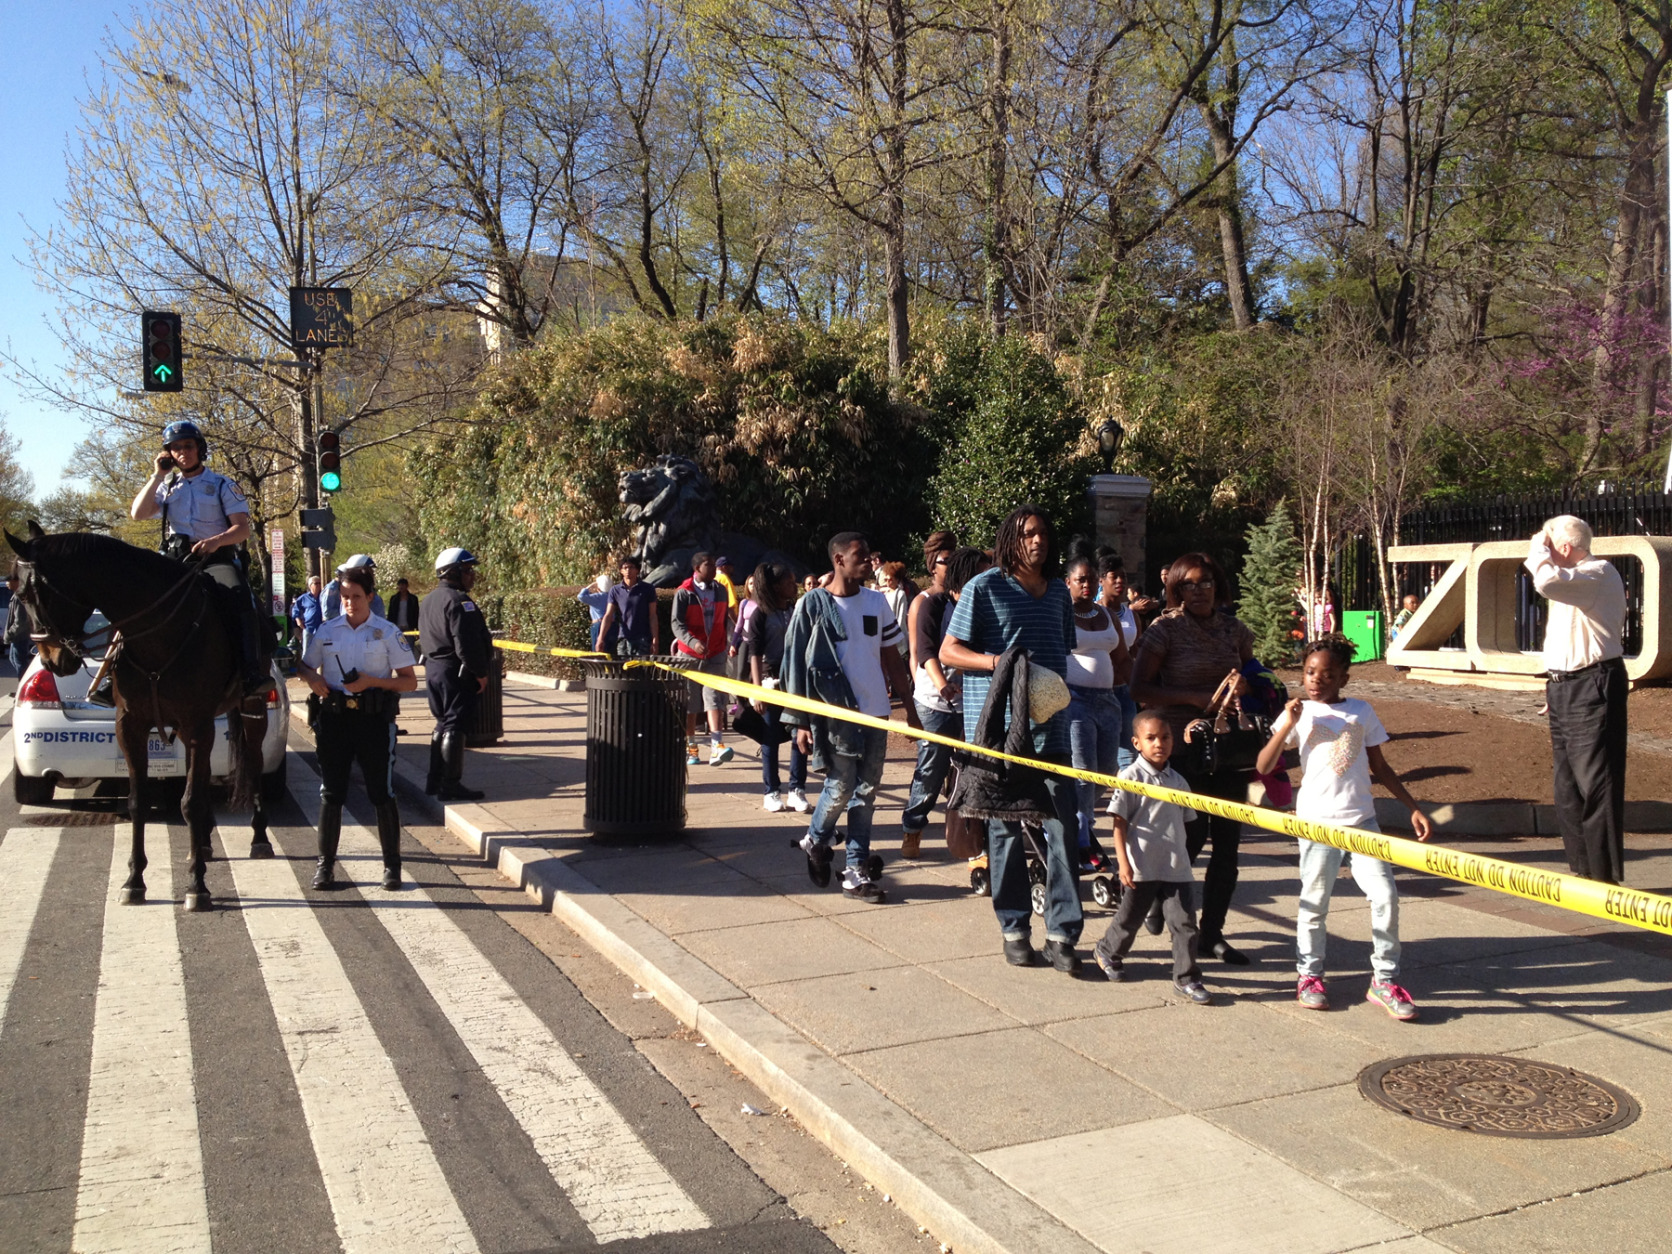 National Zoo to increase security to thwart pattern of springtime violence